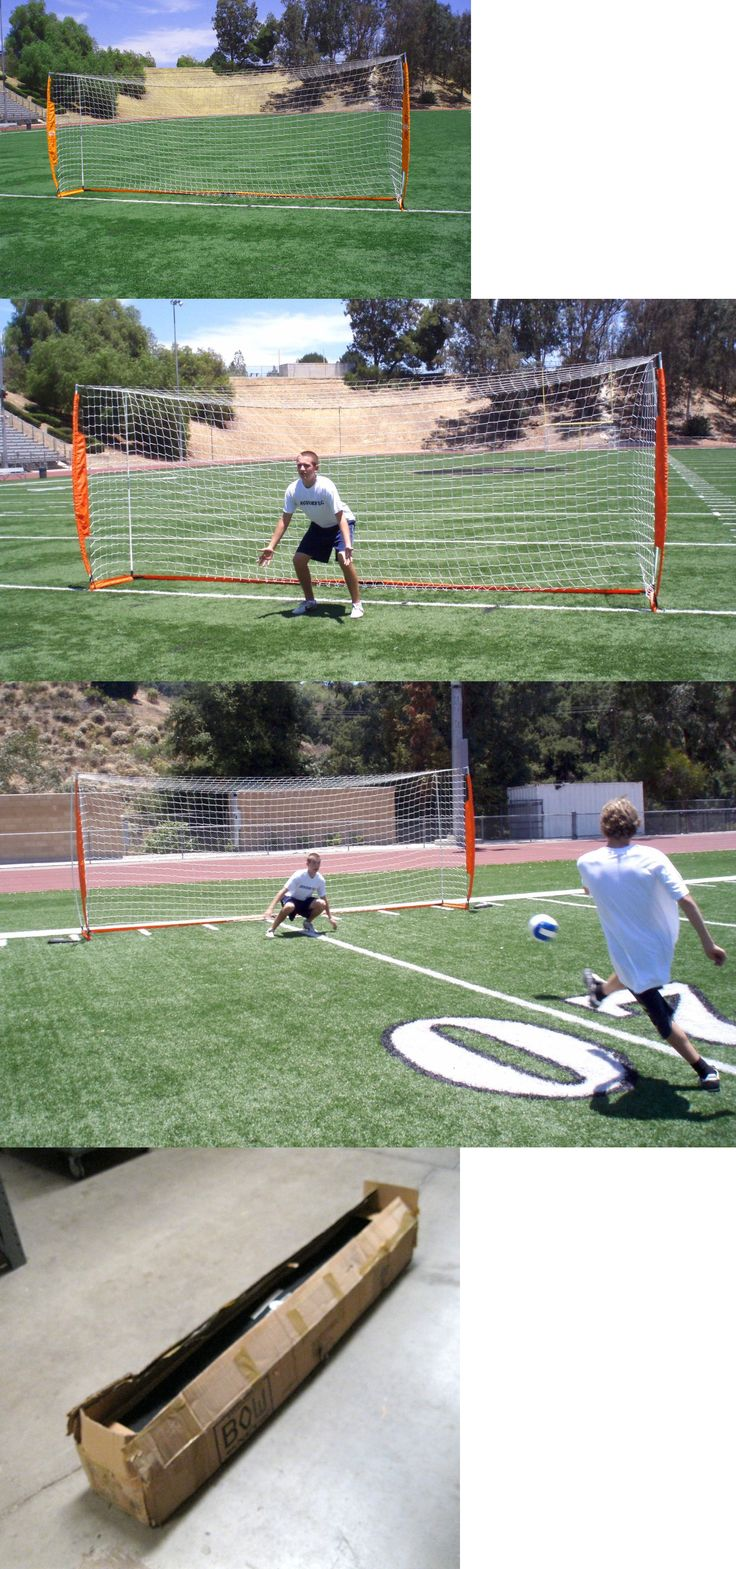 Goals and Nets 159180: Bownet 6 6 X 18 6 Portable Soccer Goal - New -> BUY IT NOW ONLY: $240 on eBay!